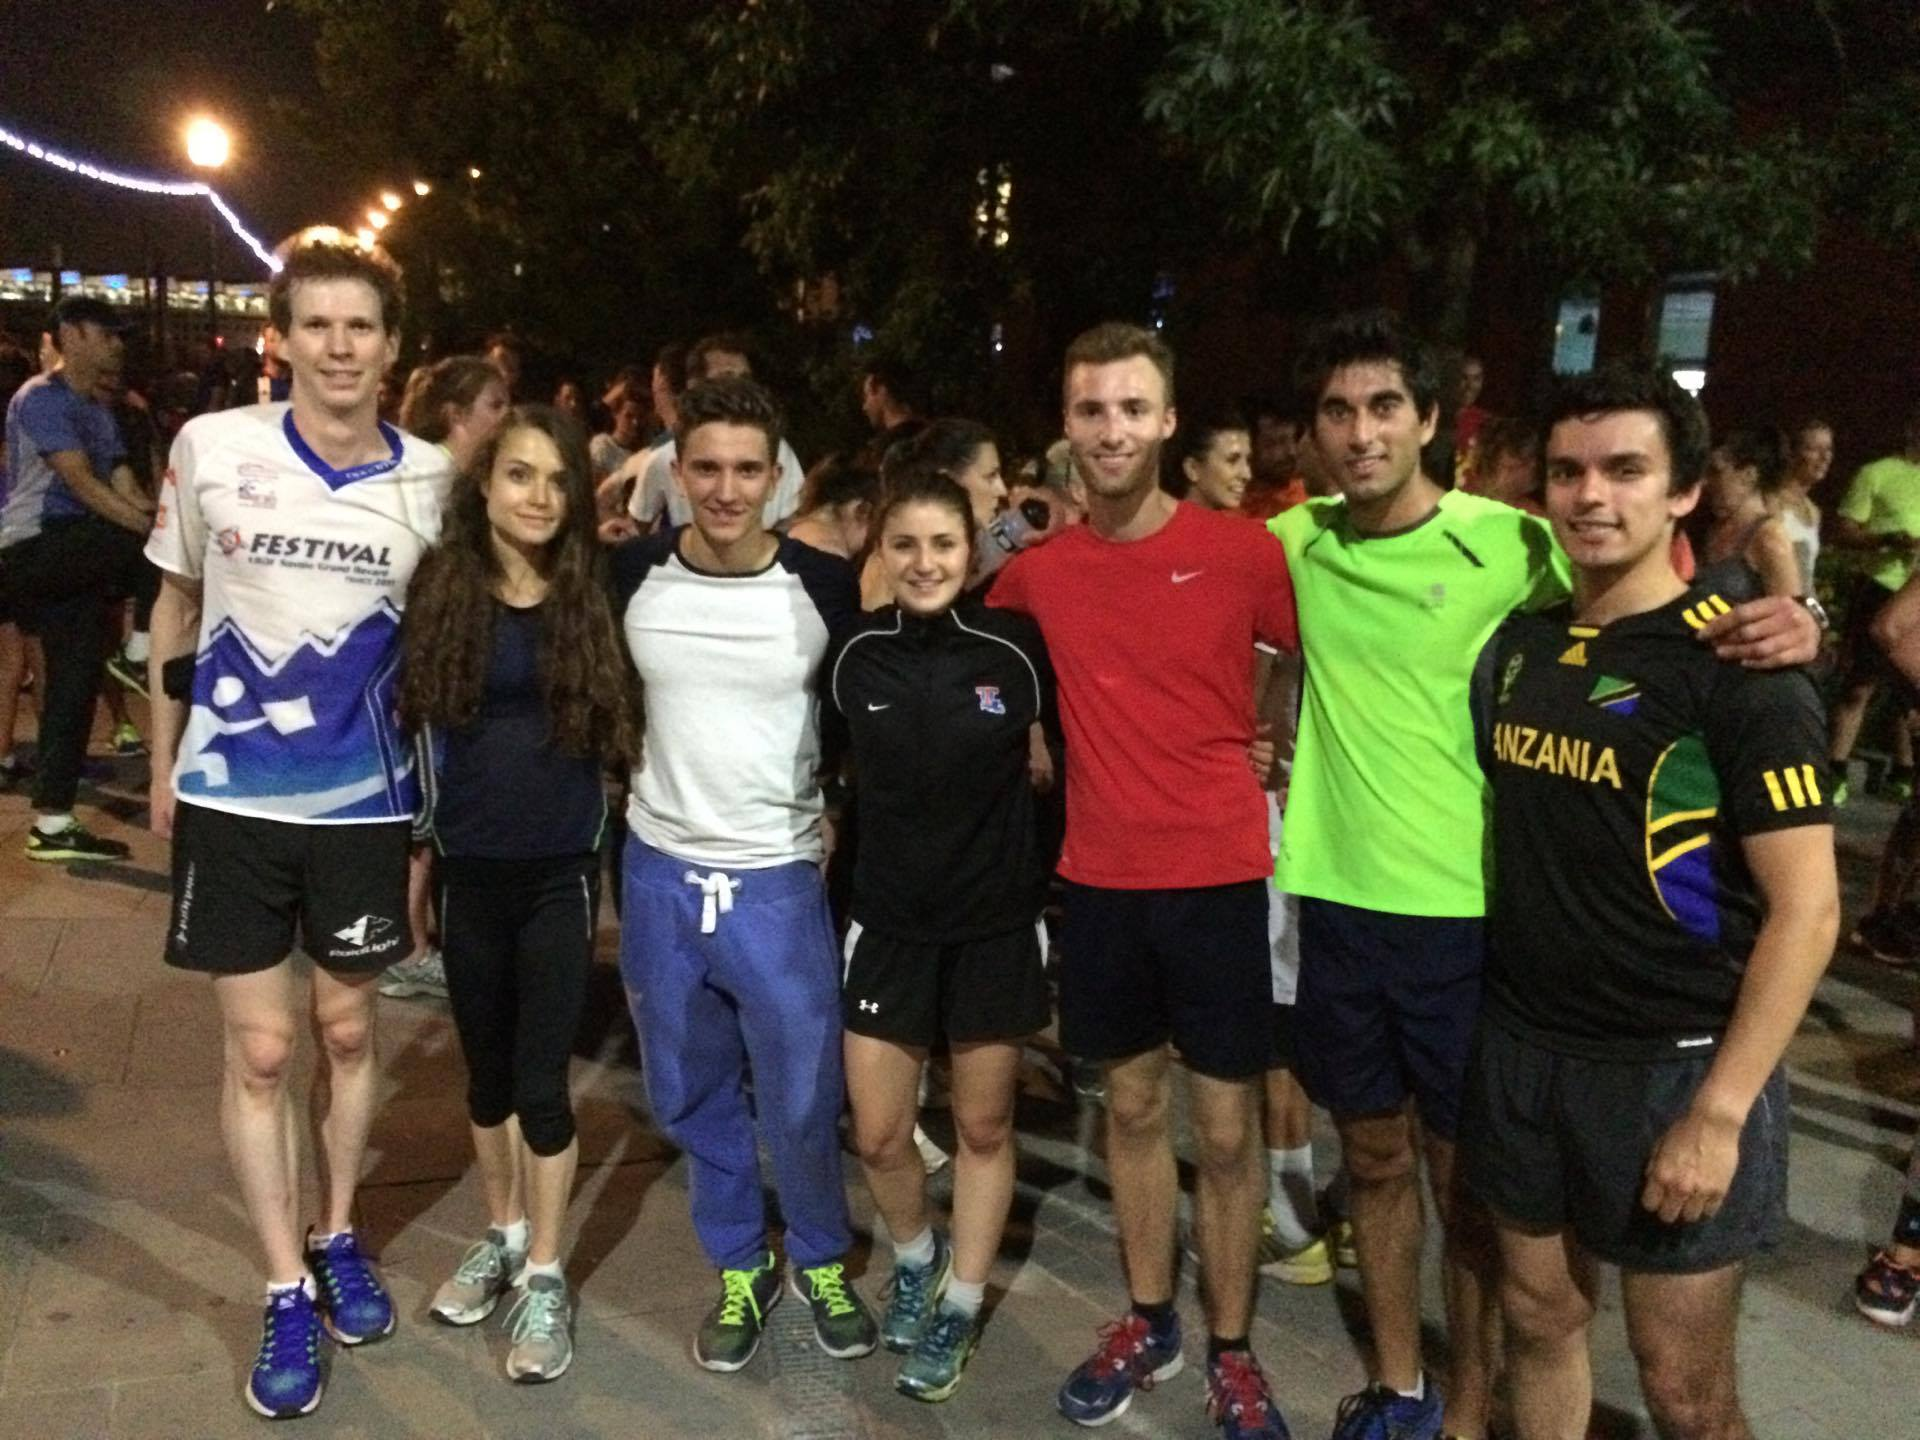 de4cfea5ce1d47 Imperial College London students at the Midnight Runners